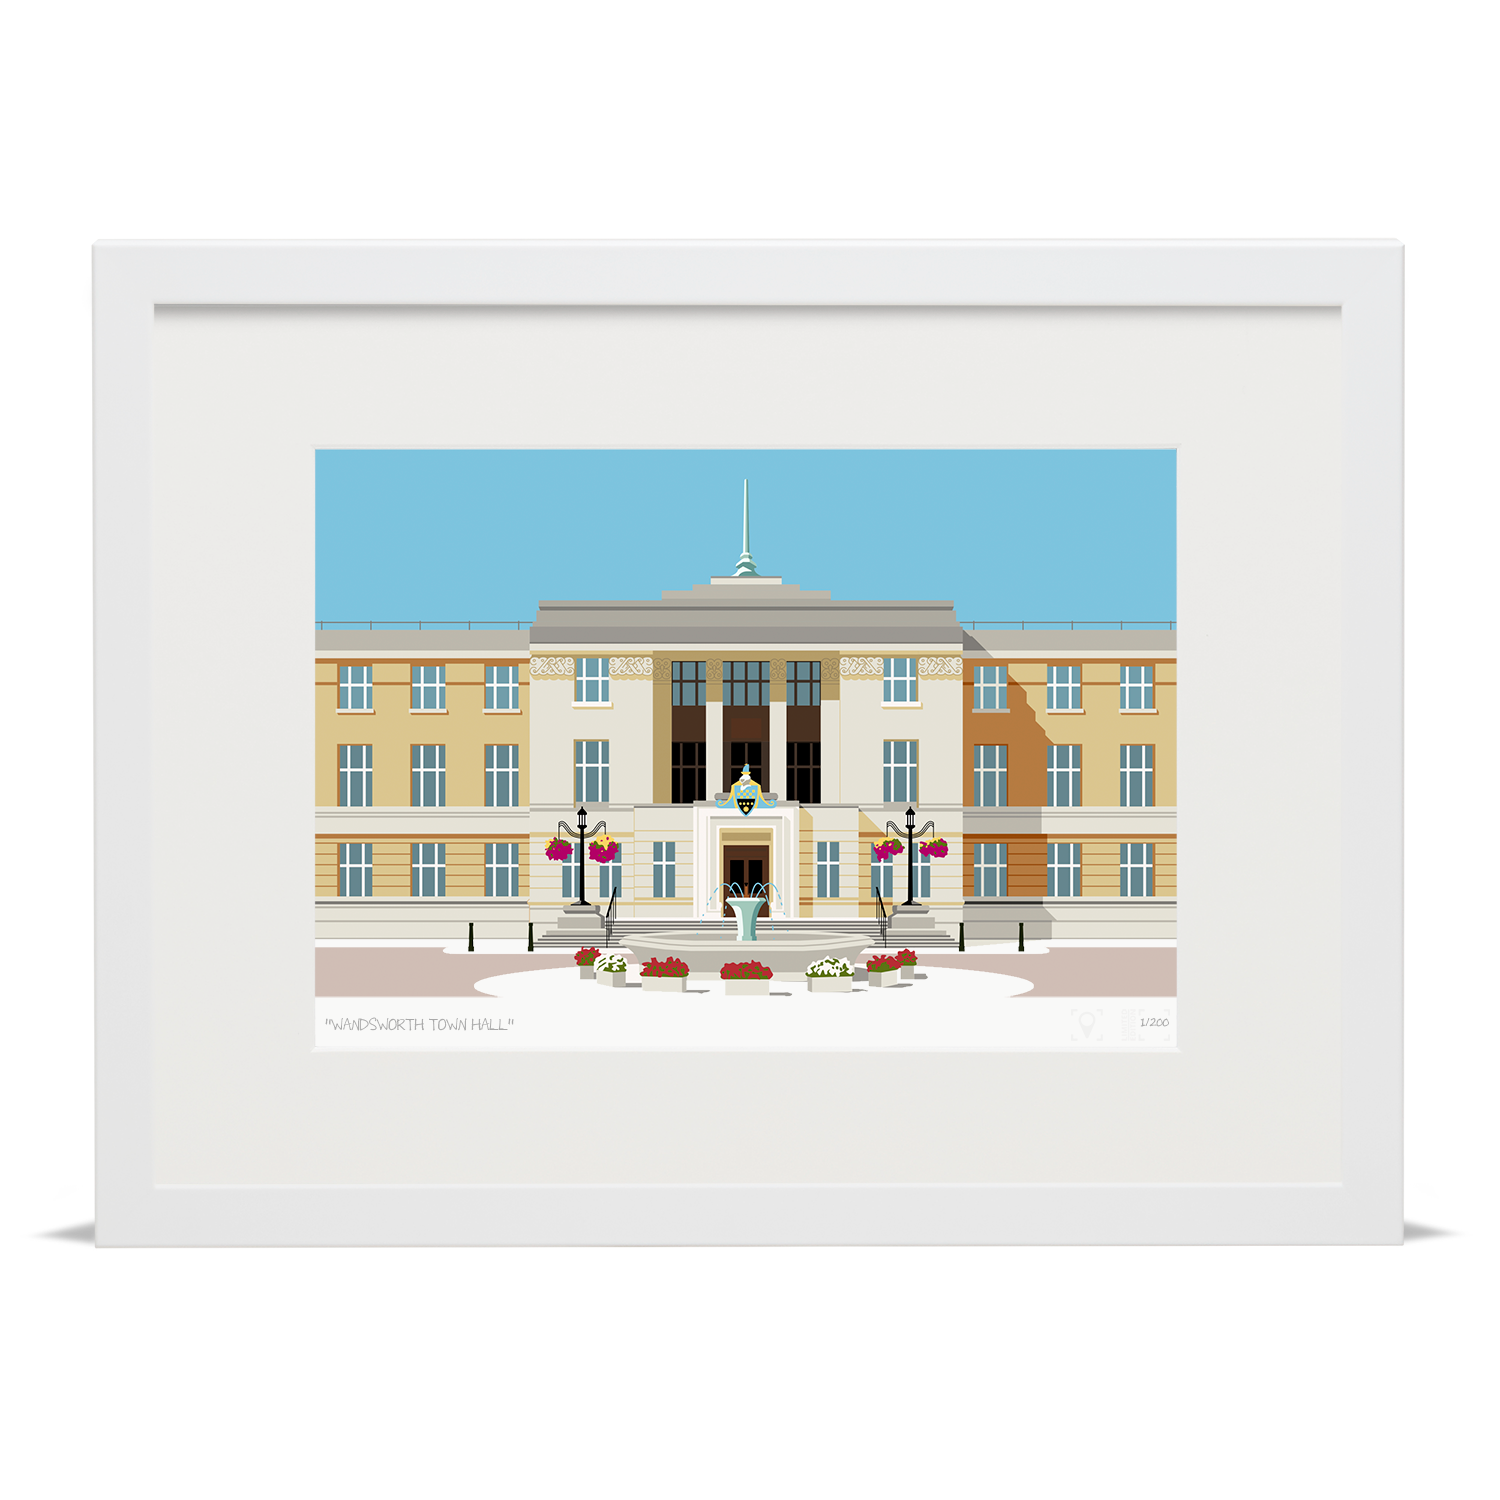 Place in Print Wandsworth Town Hall Landmark Art Print